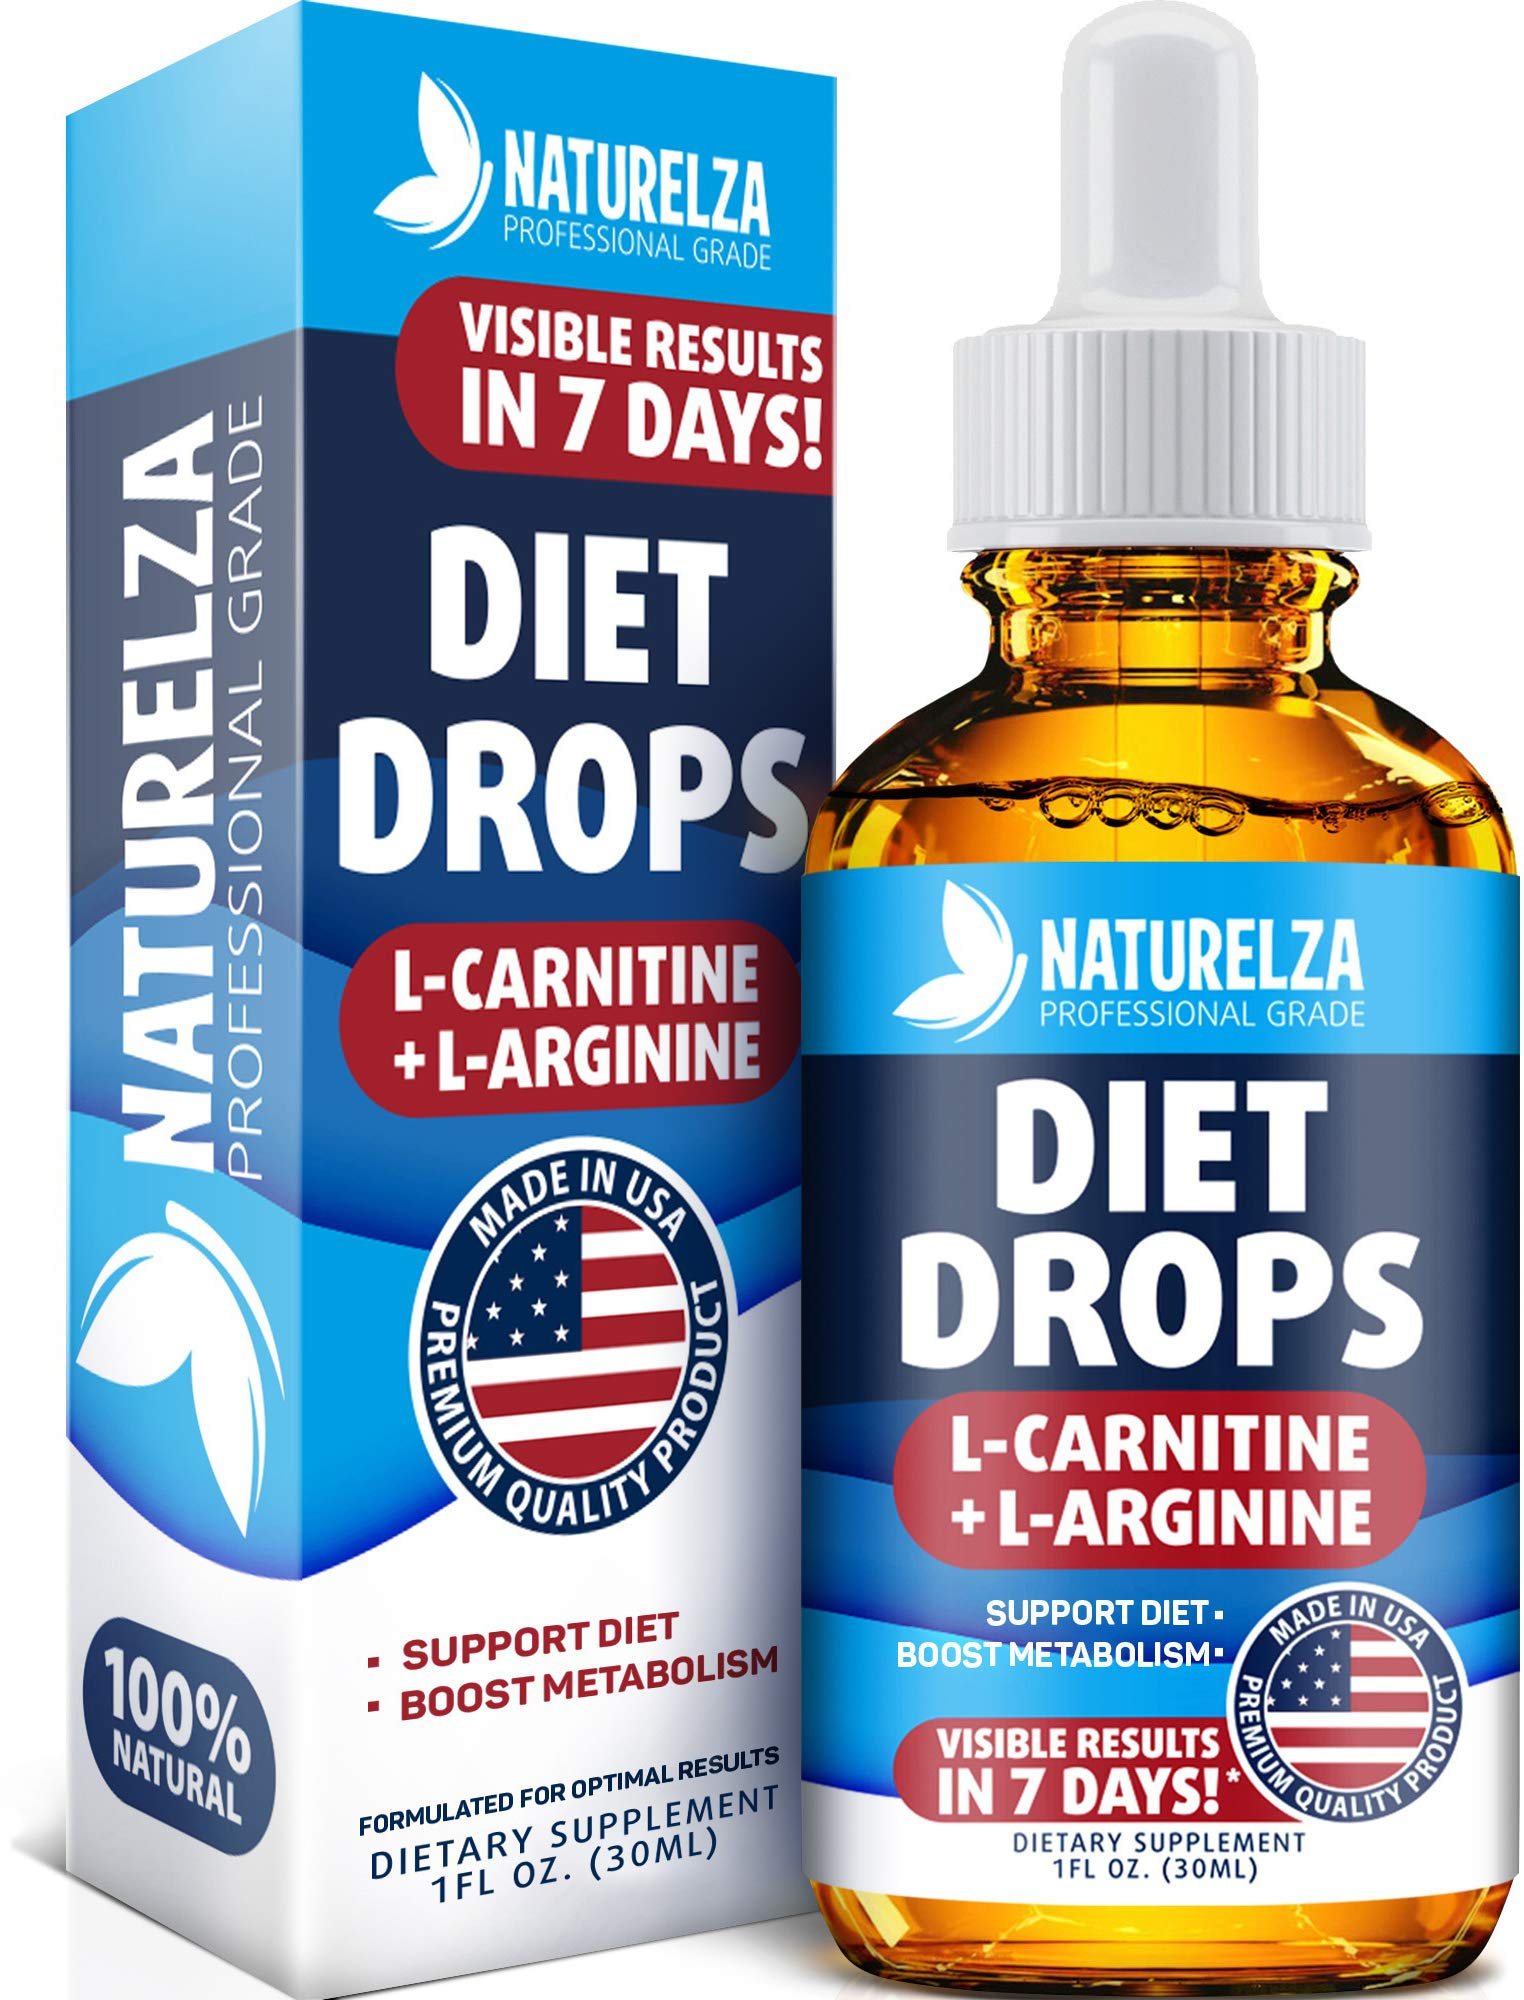 Weight Loss Drops - Made in USA - Best Diet Drops for Fat Loss - Effective Appetite Suppressant & Metabolism Booster - 100% Natural, Safe & Proven Ingredients - Non GMO Fat Burner - Garcinia Cambogia by Naturelza